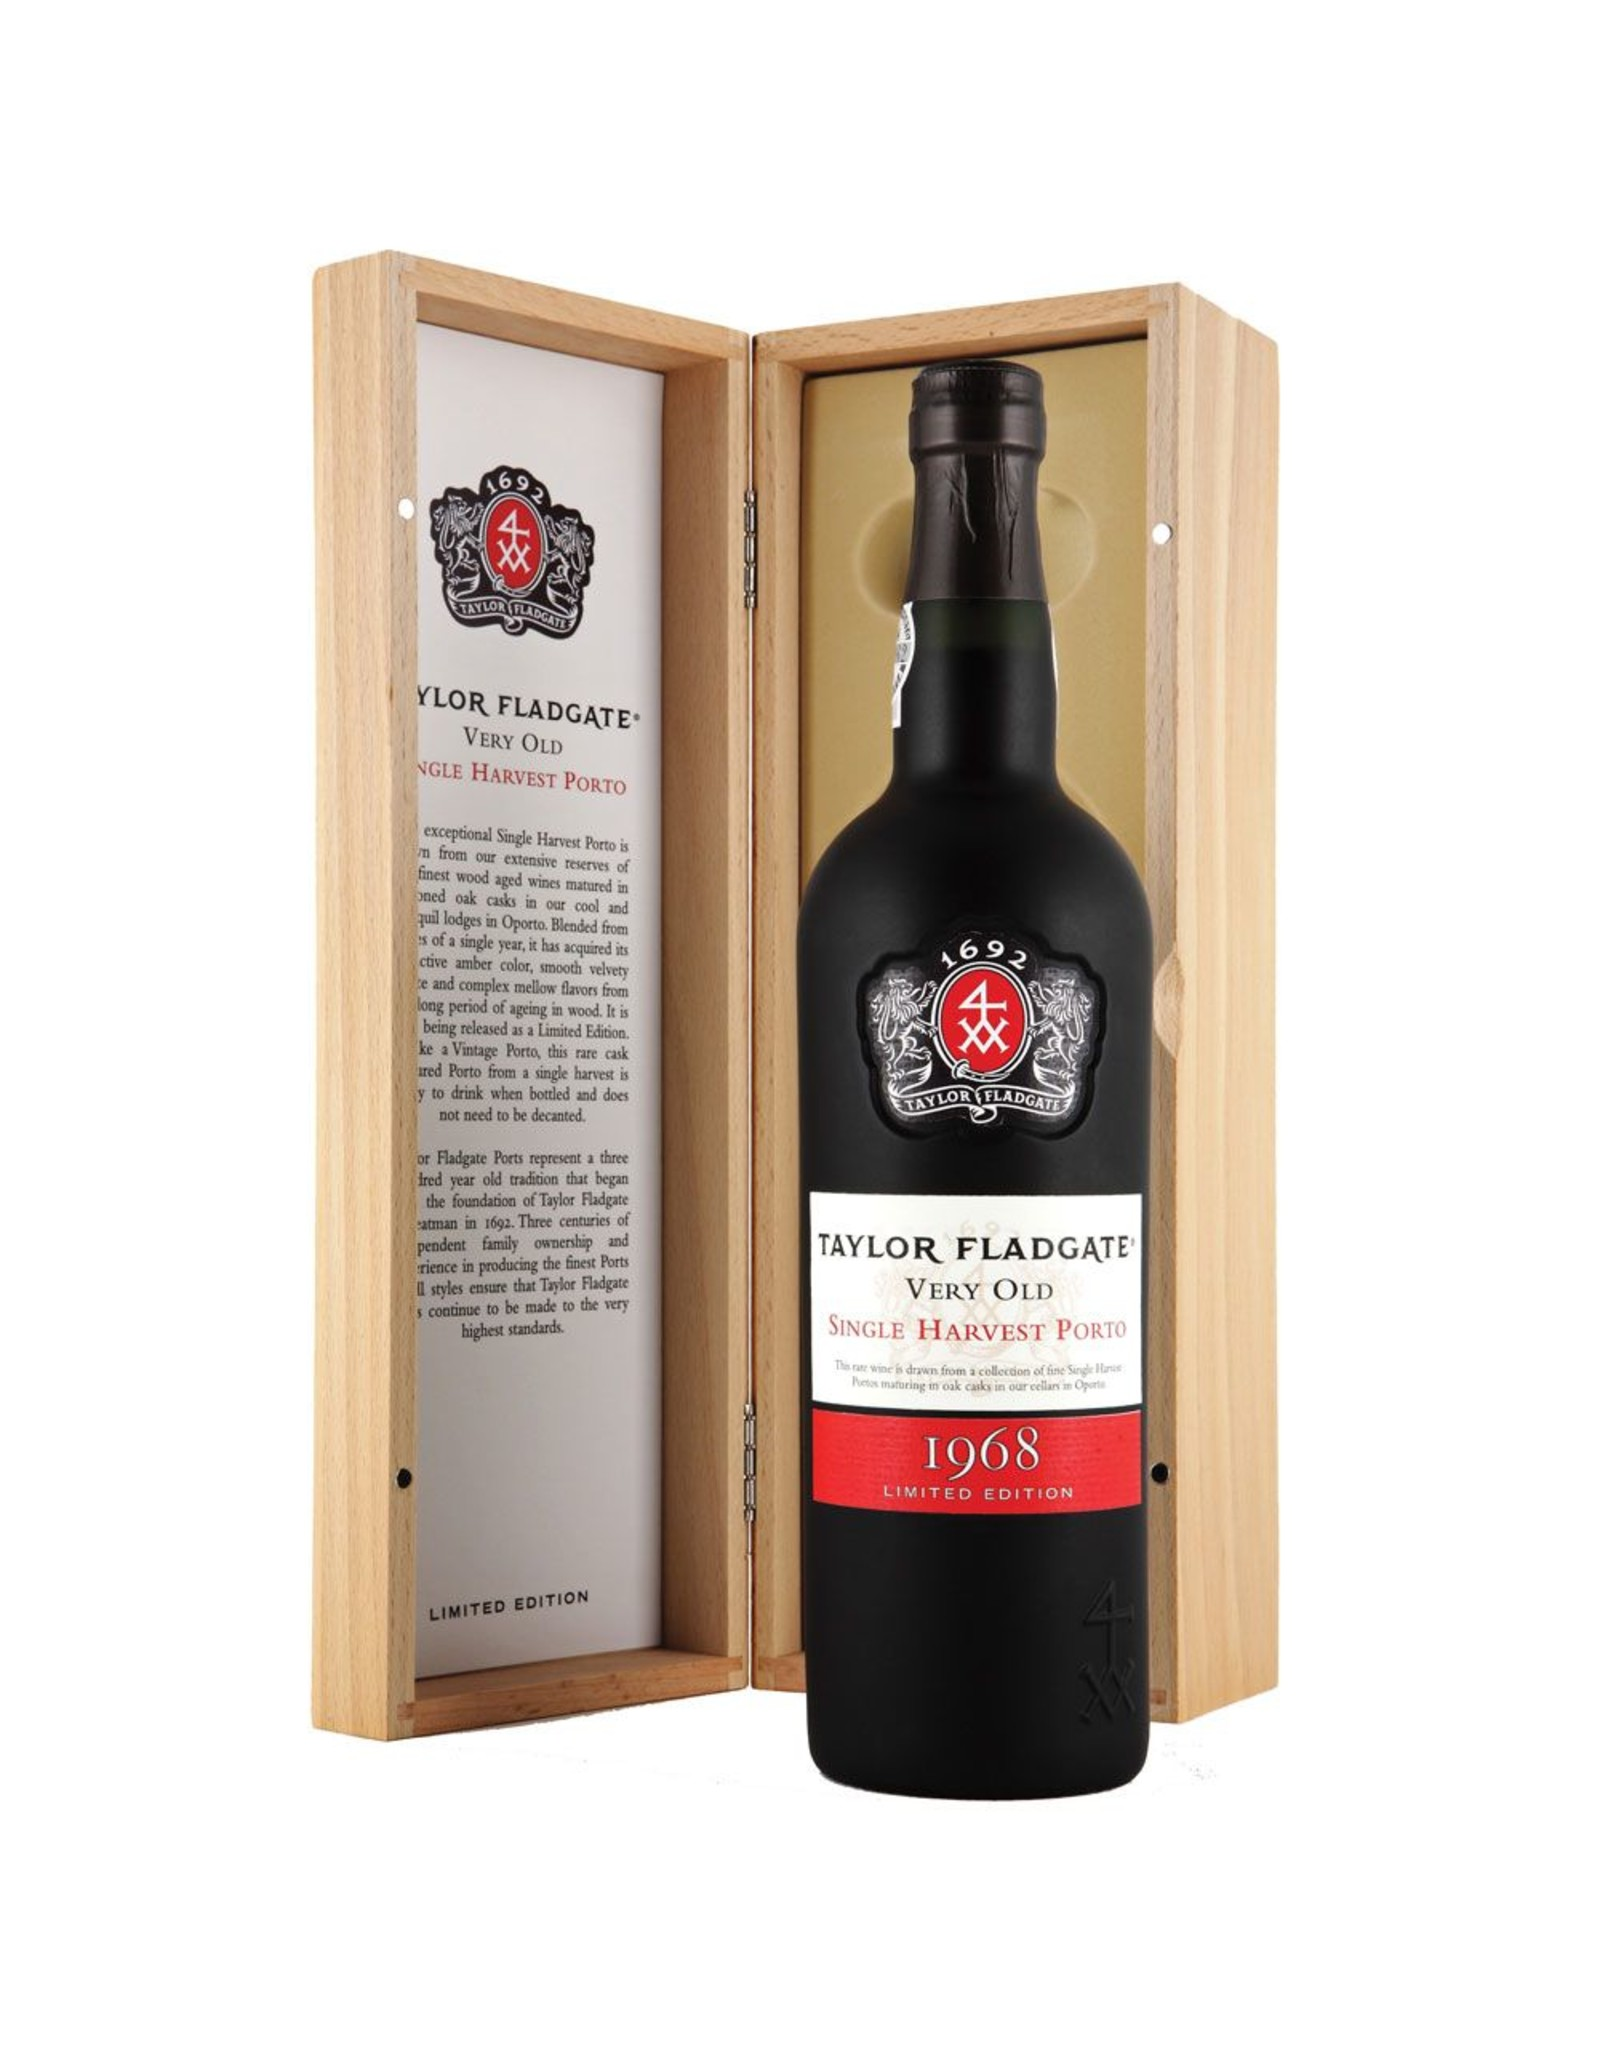 Port 1968, Taylor Fladgate Very Old Single Harvest Port, Port, Douro Valley, Oporto, Portugal, 20.5 % Alc,